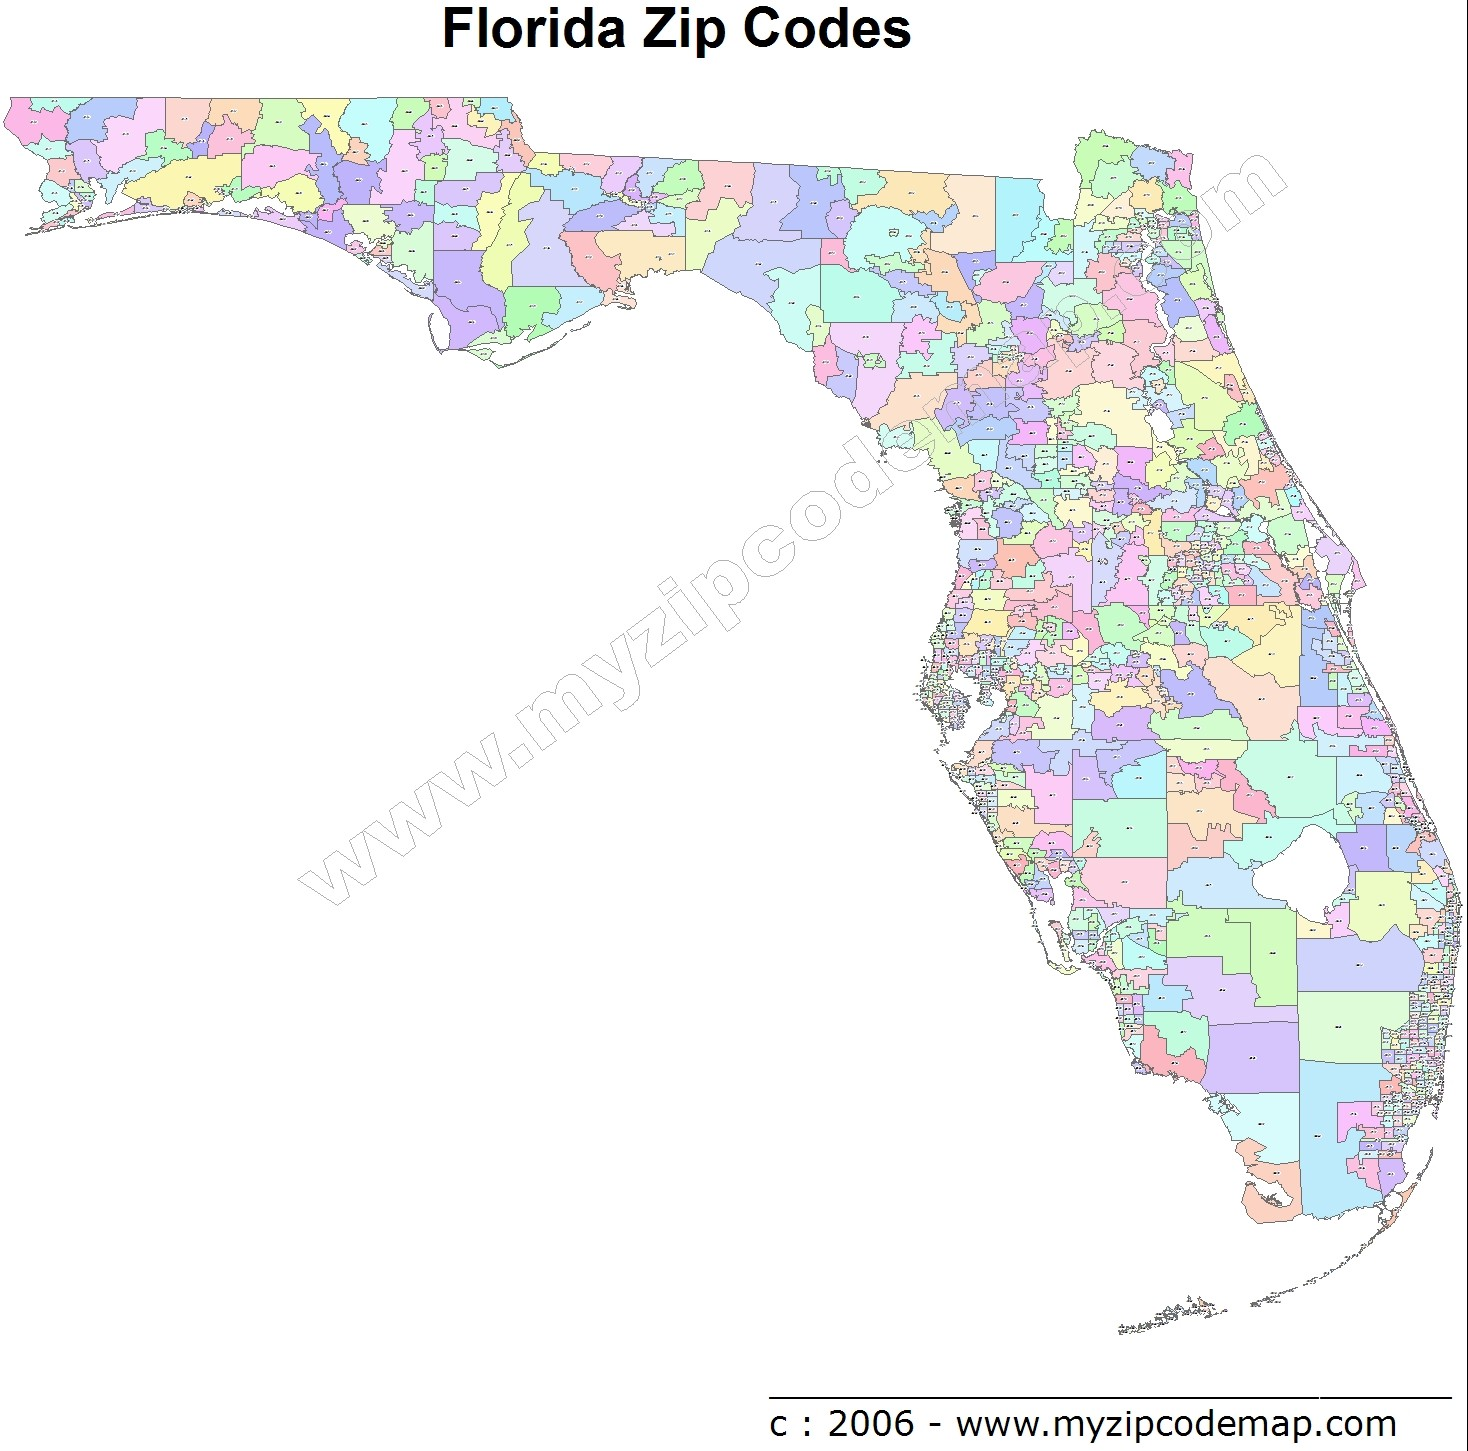 Florida (FL) Zip Code Map